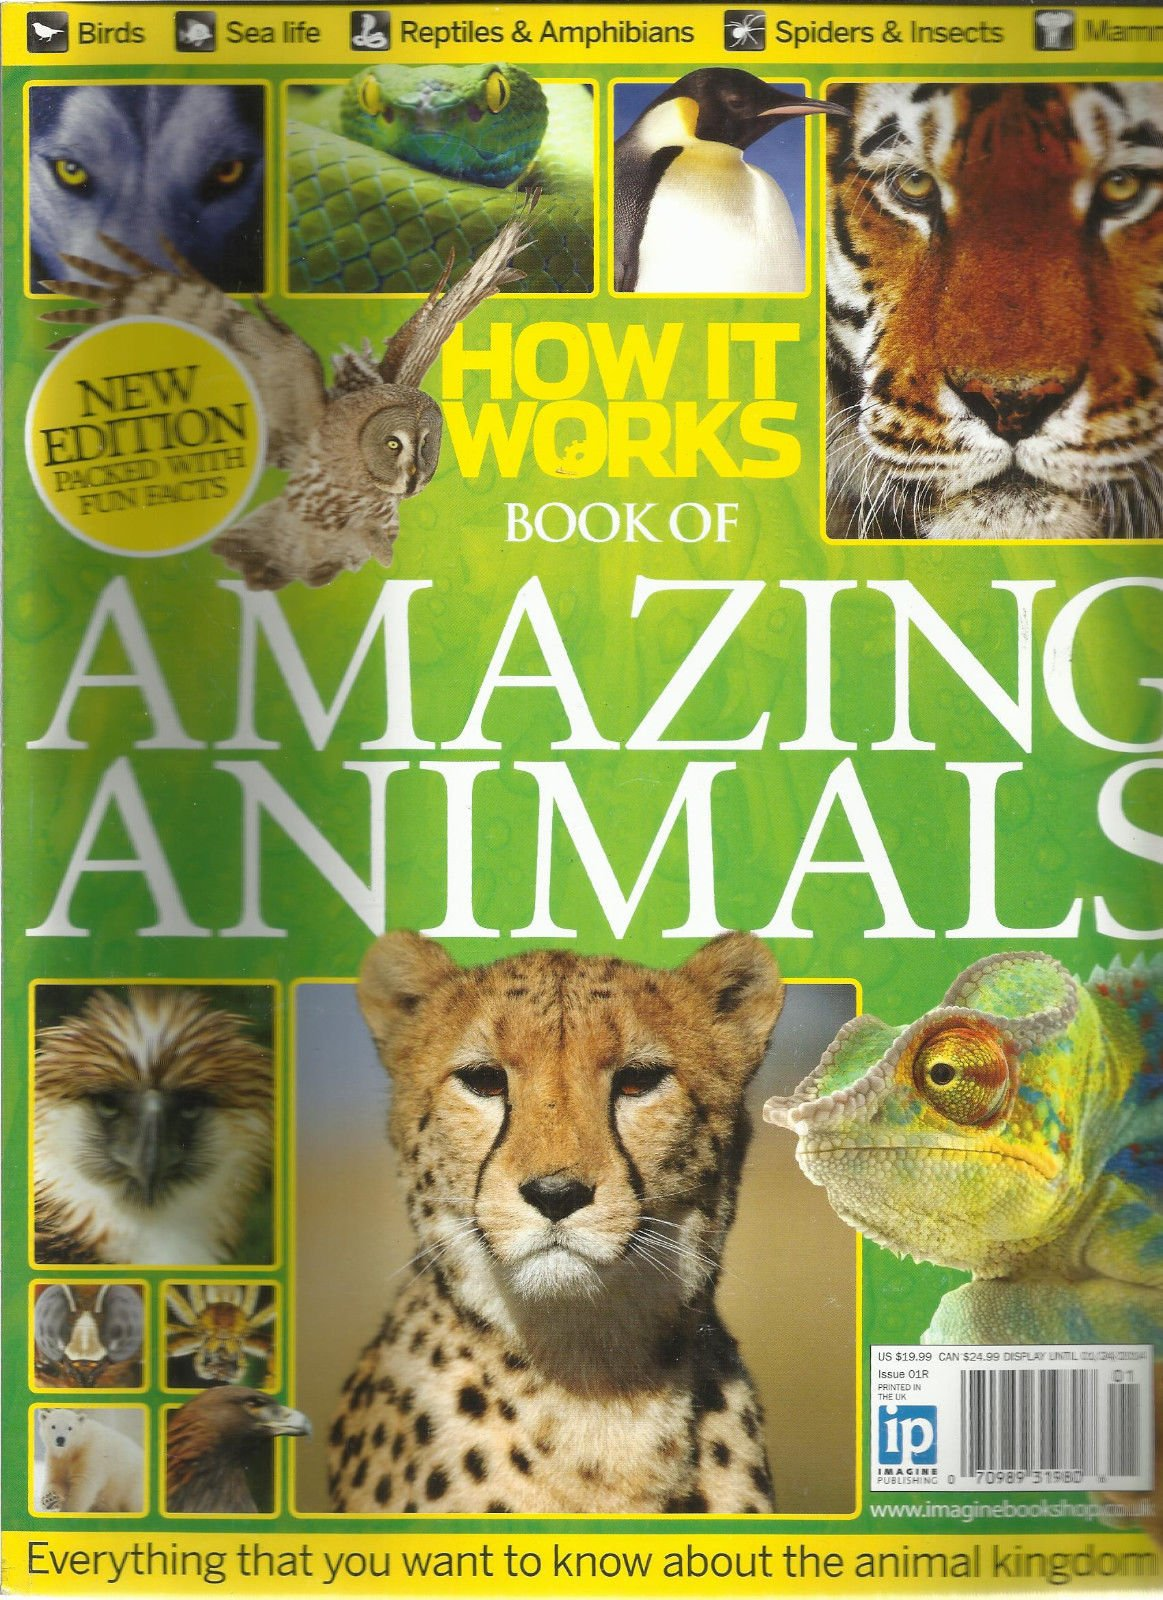 HOW IT WORKS BOOKS OF AMAZING ANIMALS, ISSUE, 2014 ISSUE 01R NEW EDITION